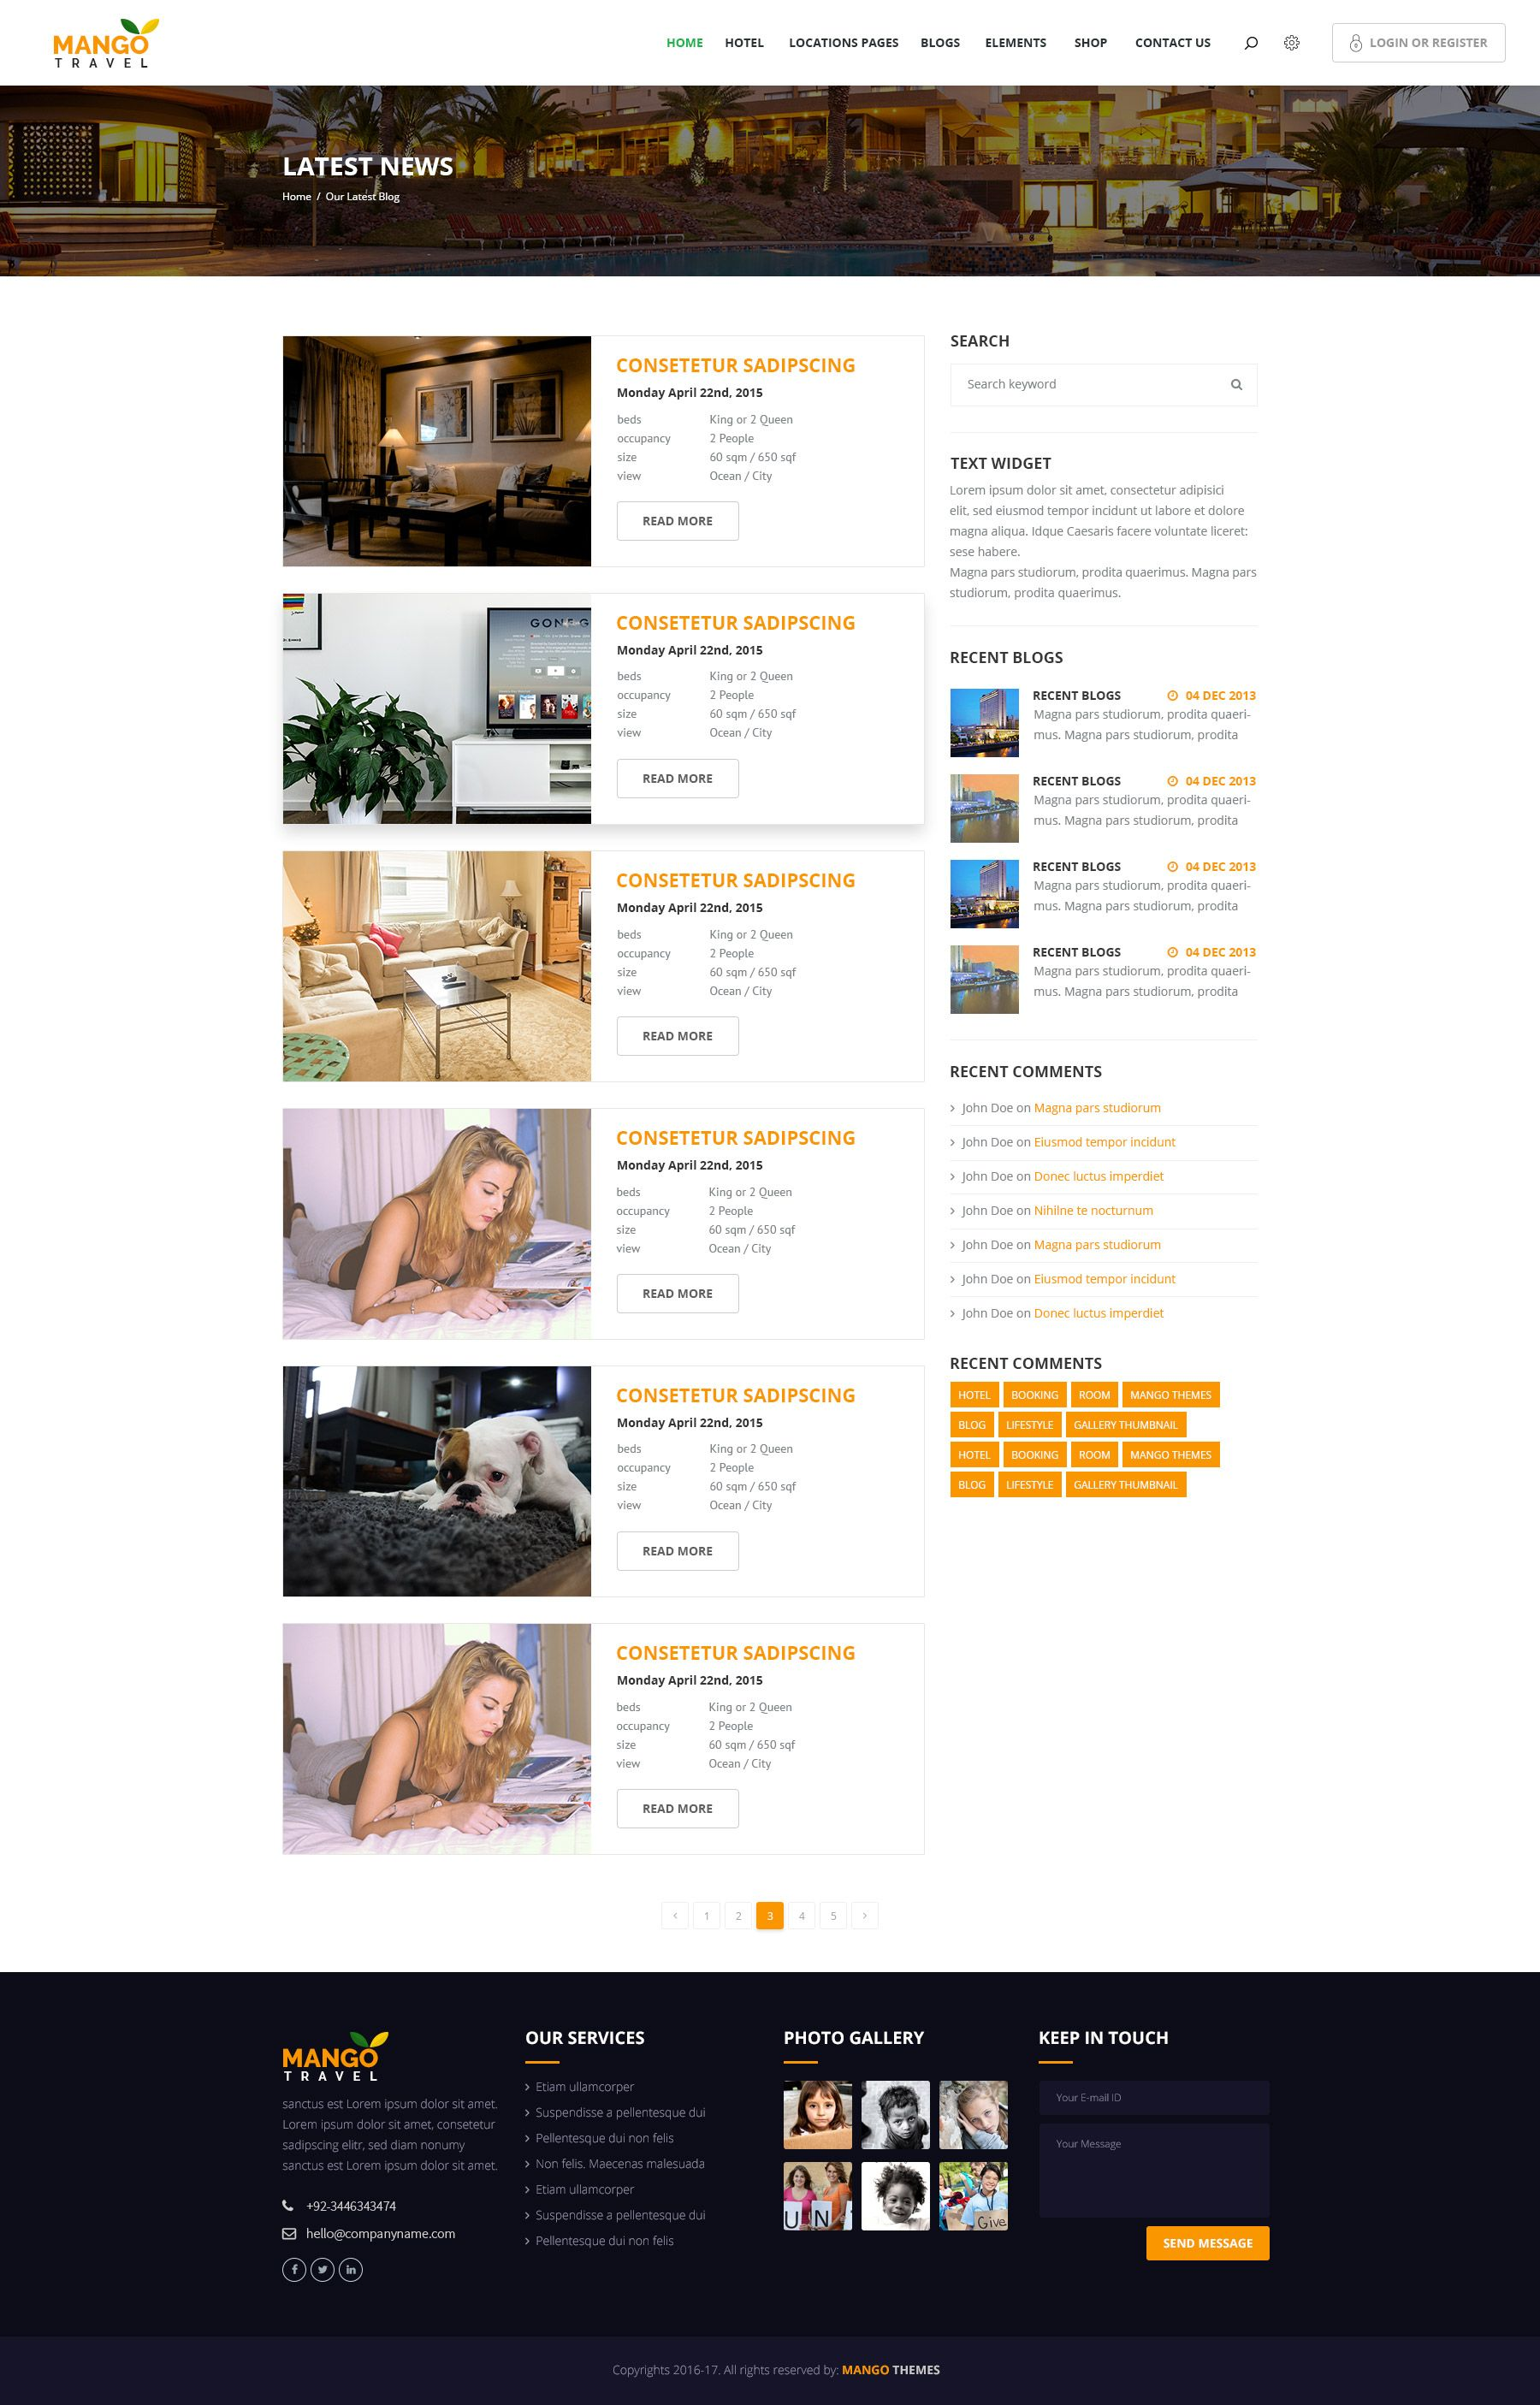 mango travel pinterest psd templates responsive grid and template